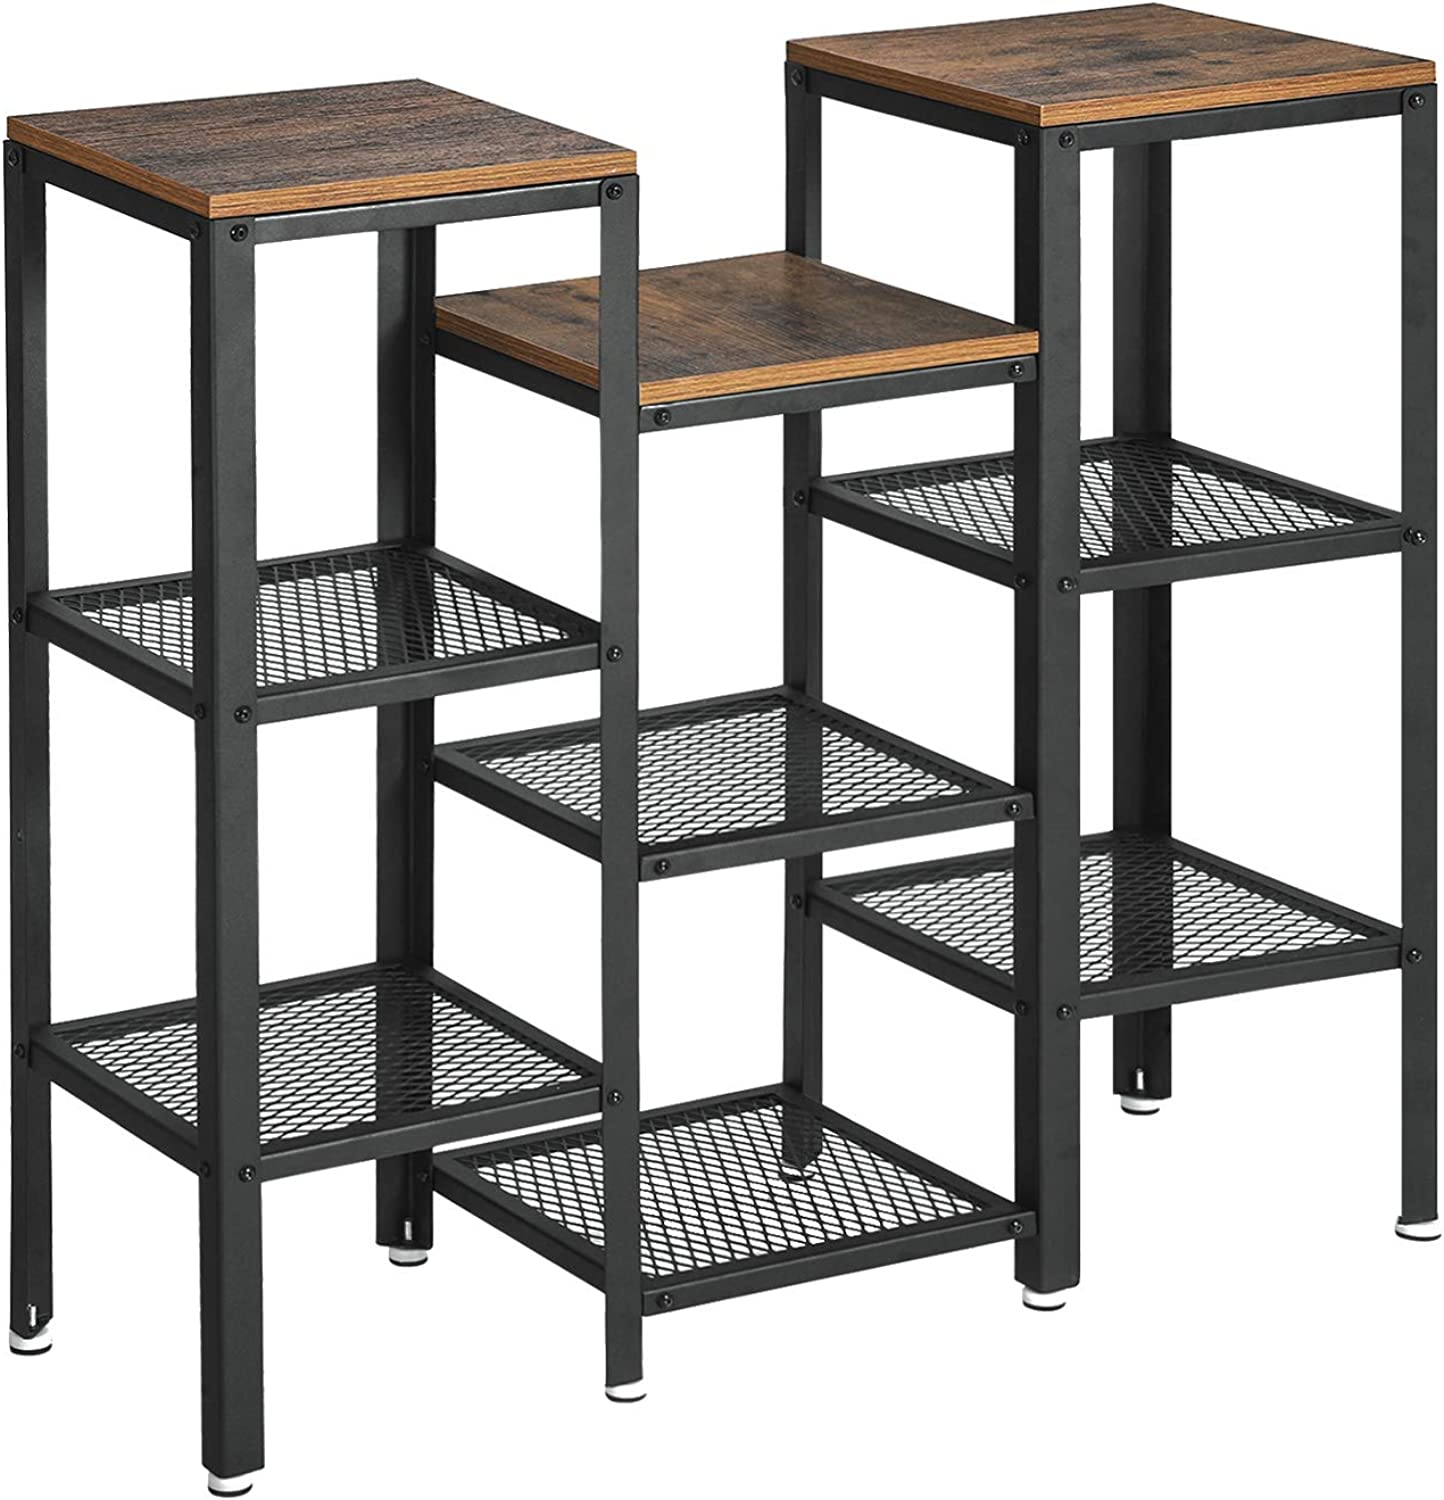 VASAGLE Industrial Plant Stand, Bookshelf, Display Rack Utility Shelf, 9-Tier Storage Rack Shelving Unit, Wood Look Accent Furniture with Metal Frame for Home and Office ULSS11BX